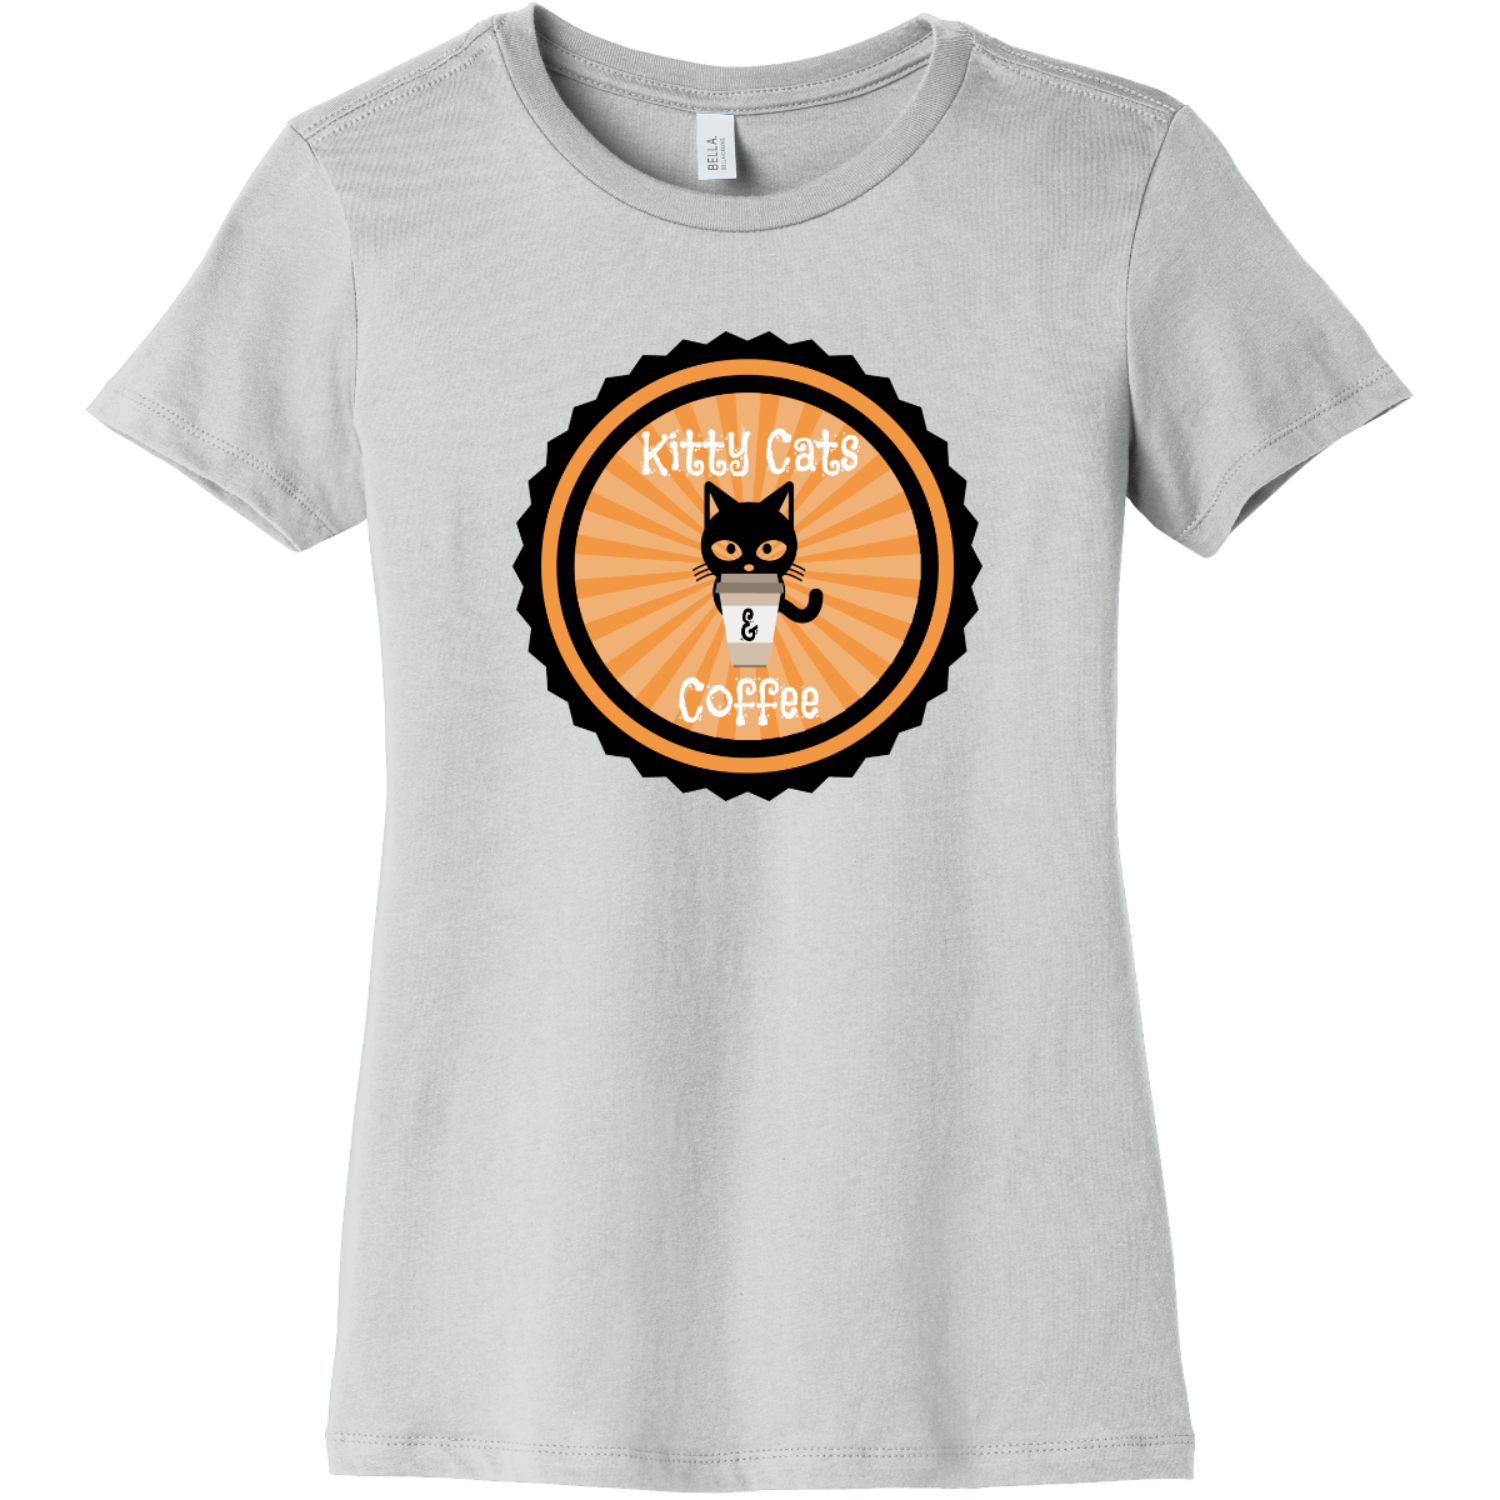 Kitty Cats and Coffee Ladies T Shirt Silver Bella Canvas 6004 Ladies The Favorite Tee